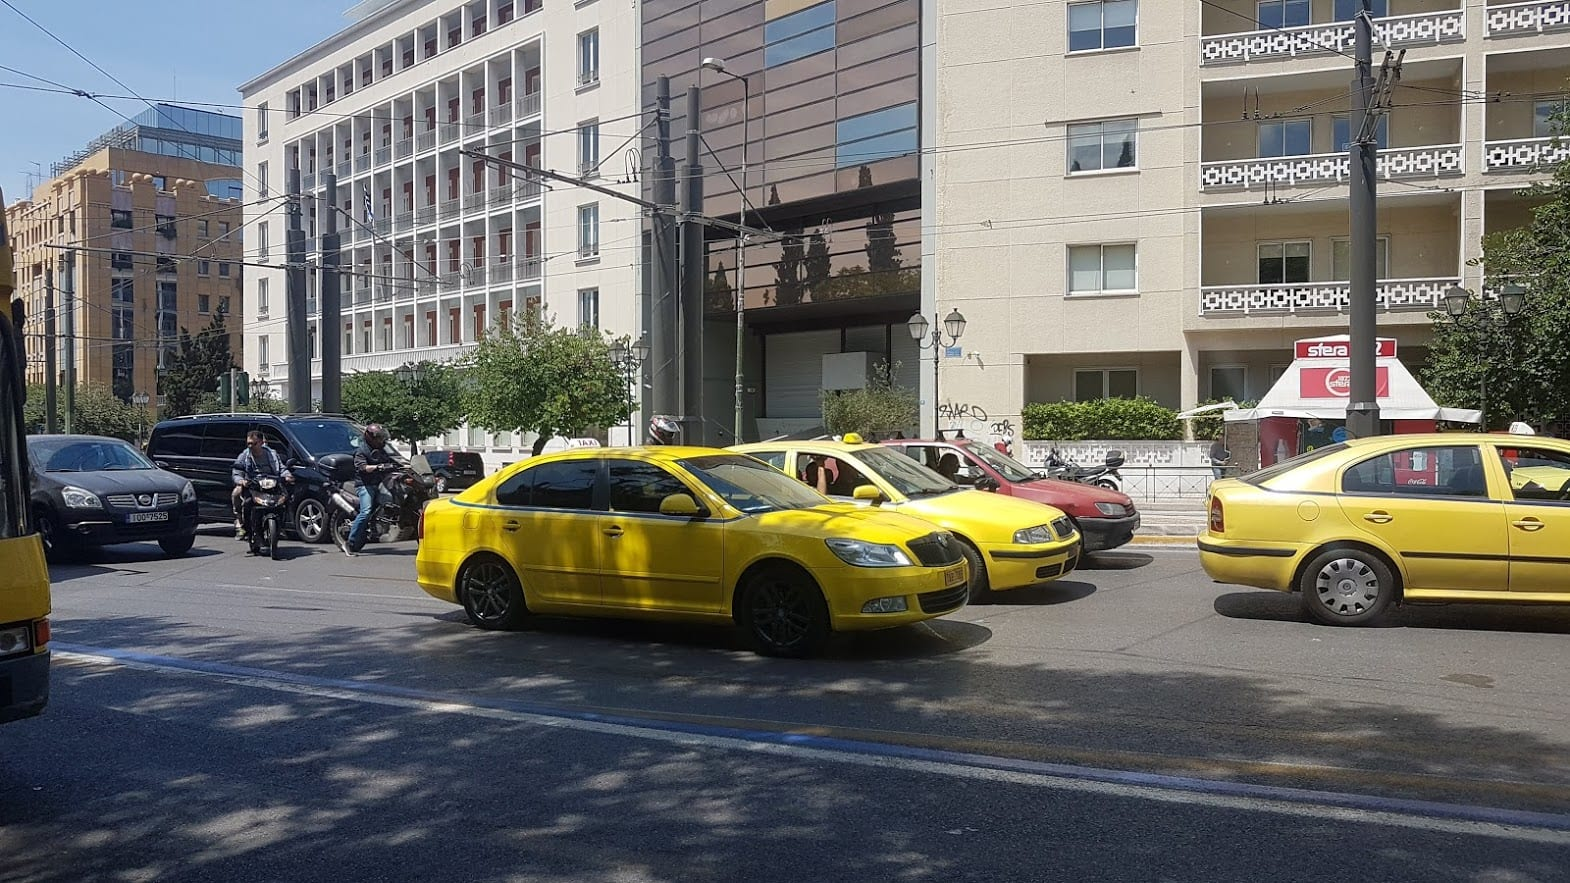 The yellow taxis in Athens